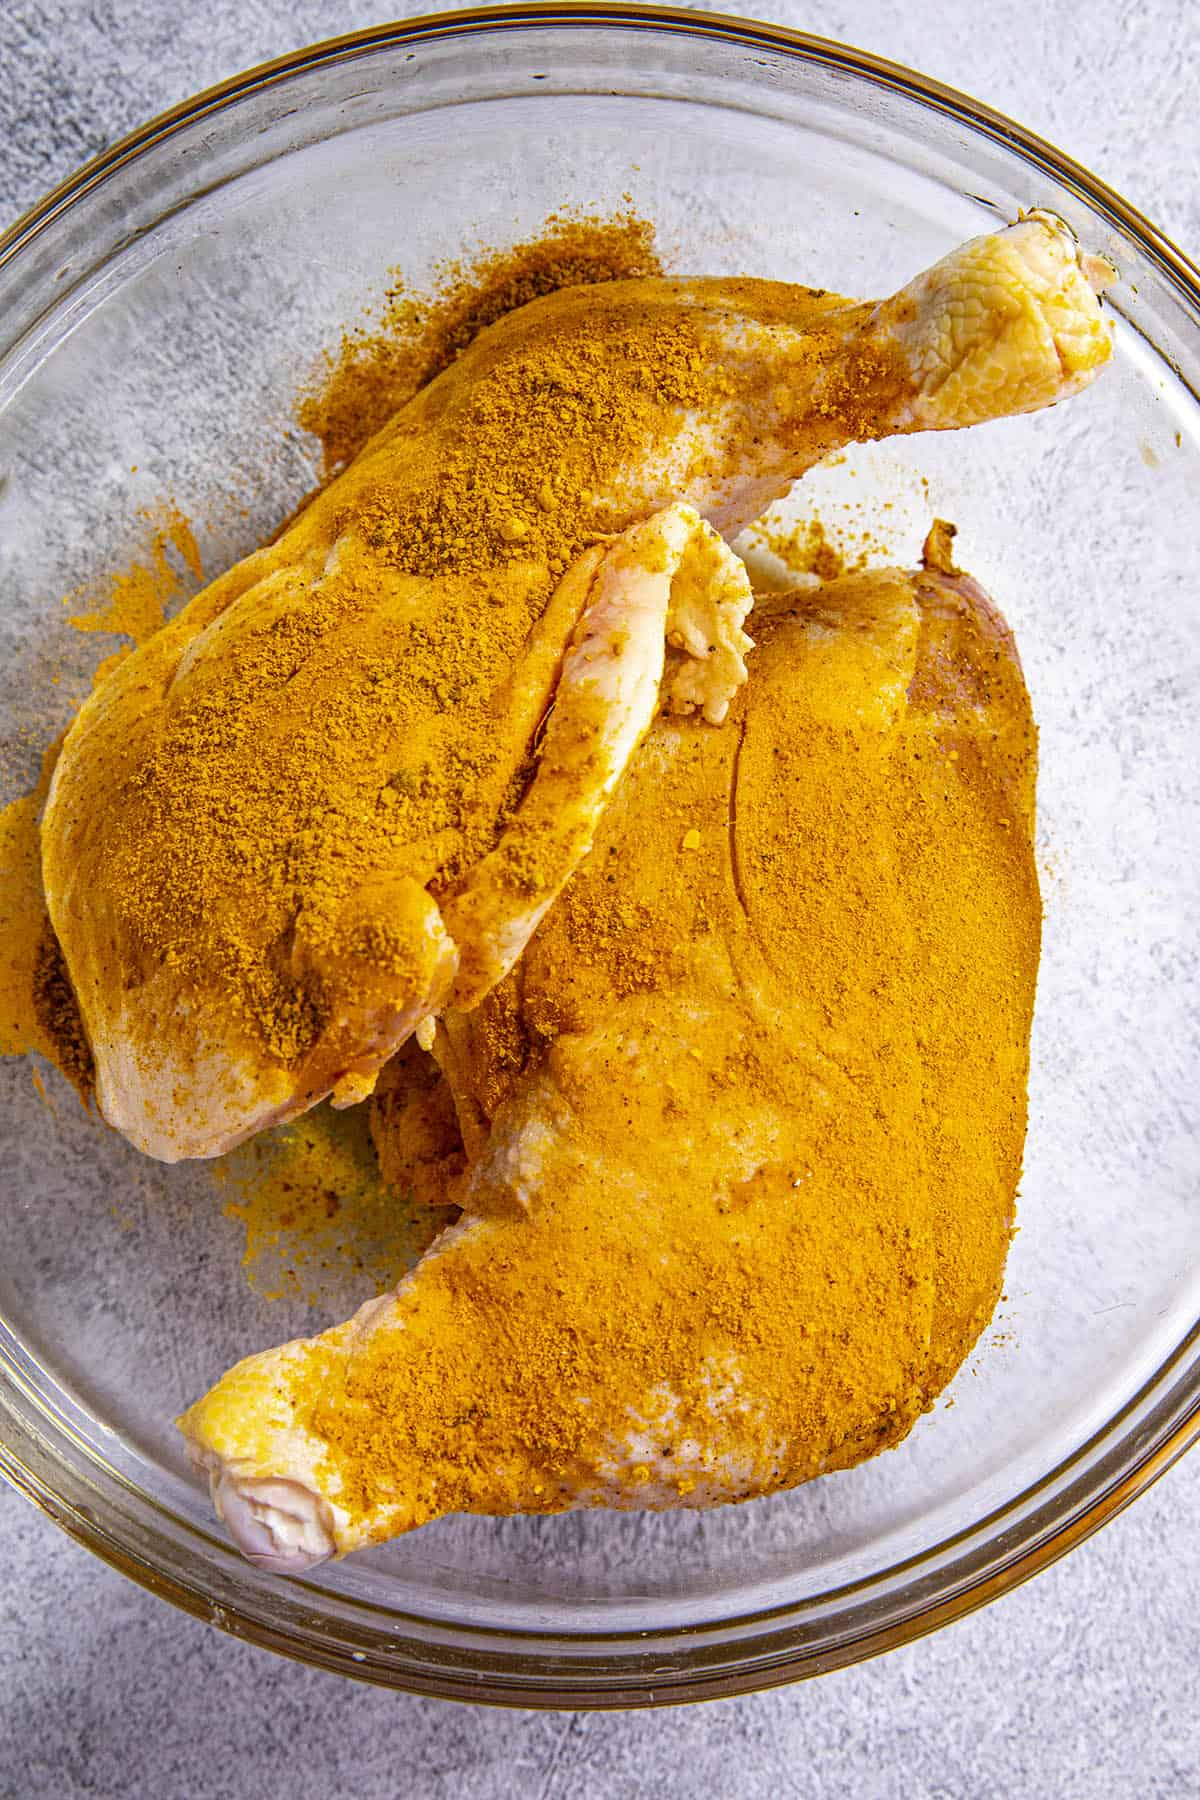 Seasoning 2 large pieces of chicken with homemade Jamaican Curry powder